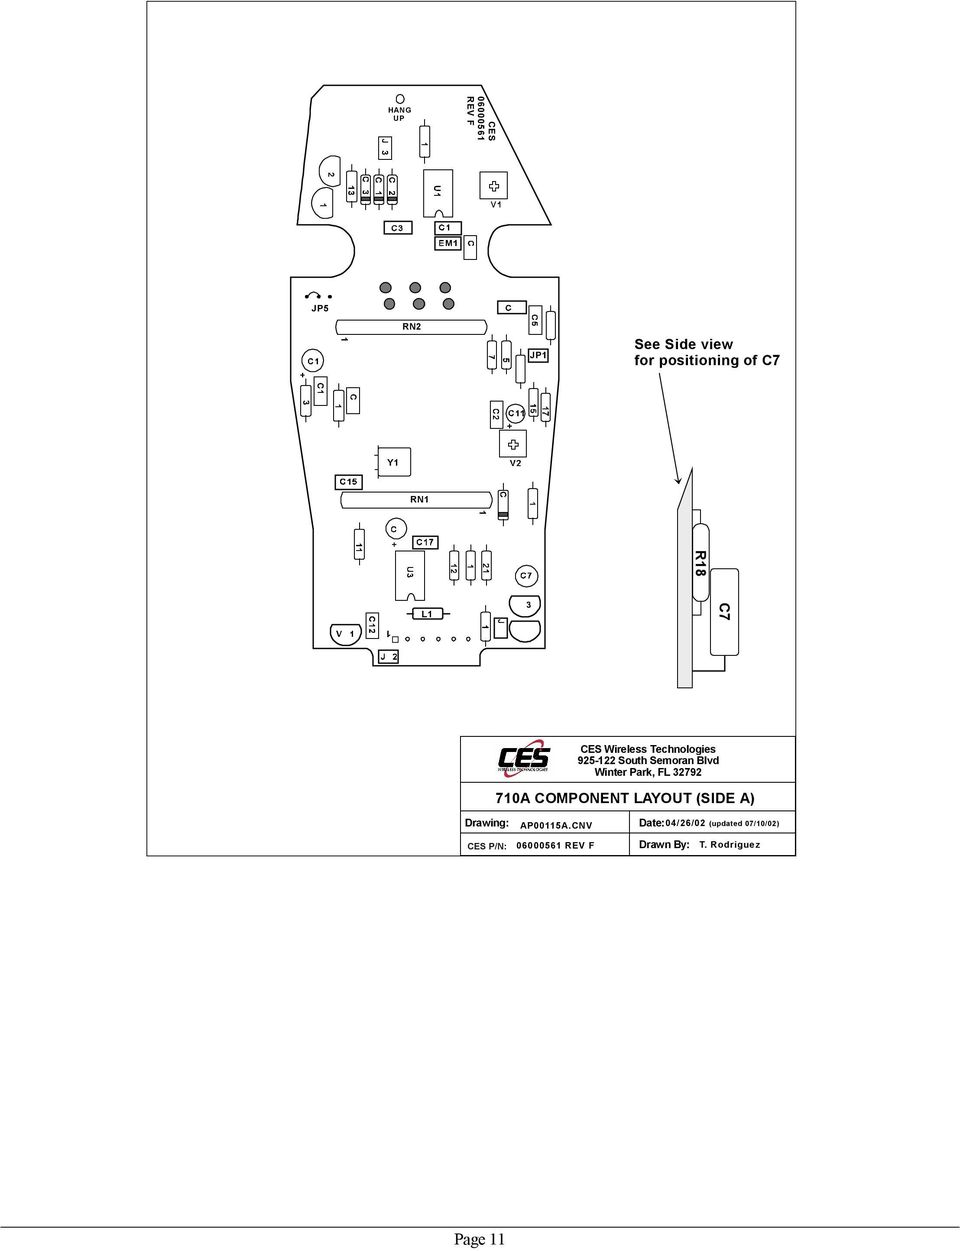 Winter Park, FL 32792 710A COMPONENT LAYOUT (SIDE A) Drawing: CES P/N: